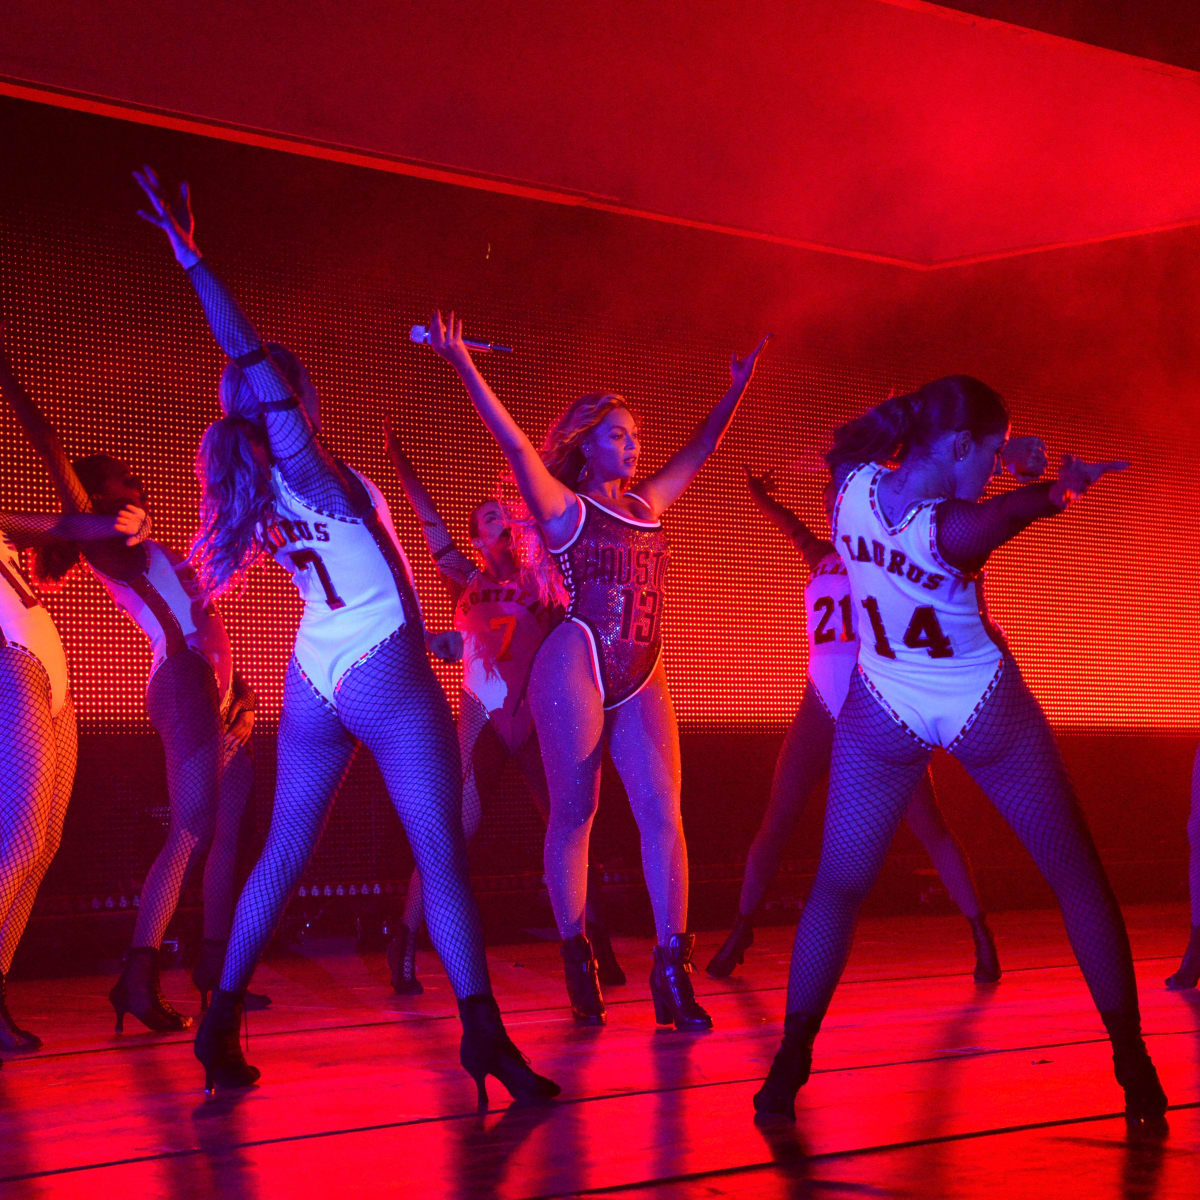 2015 Global Citizens Festival Beyonce performs